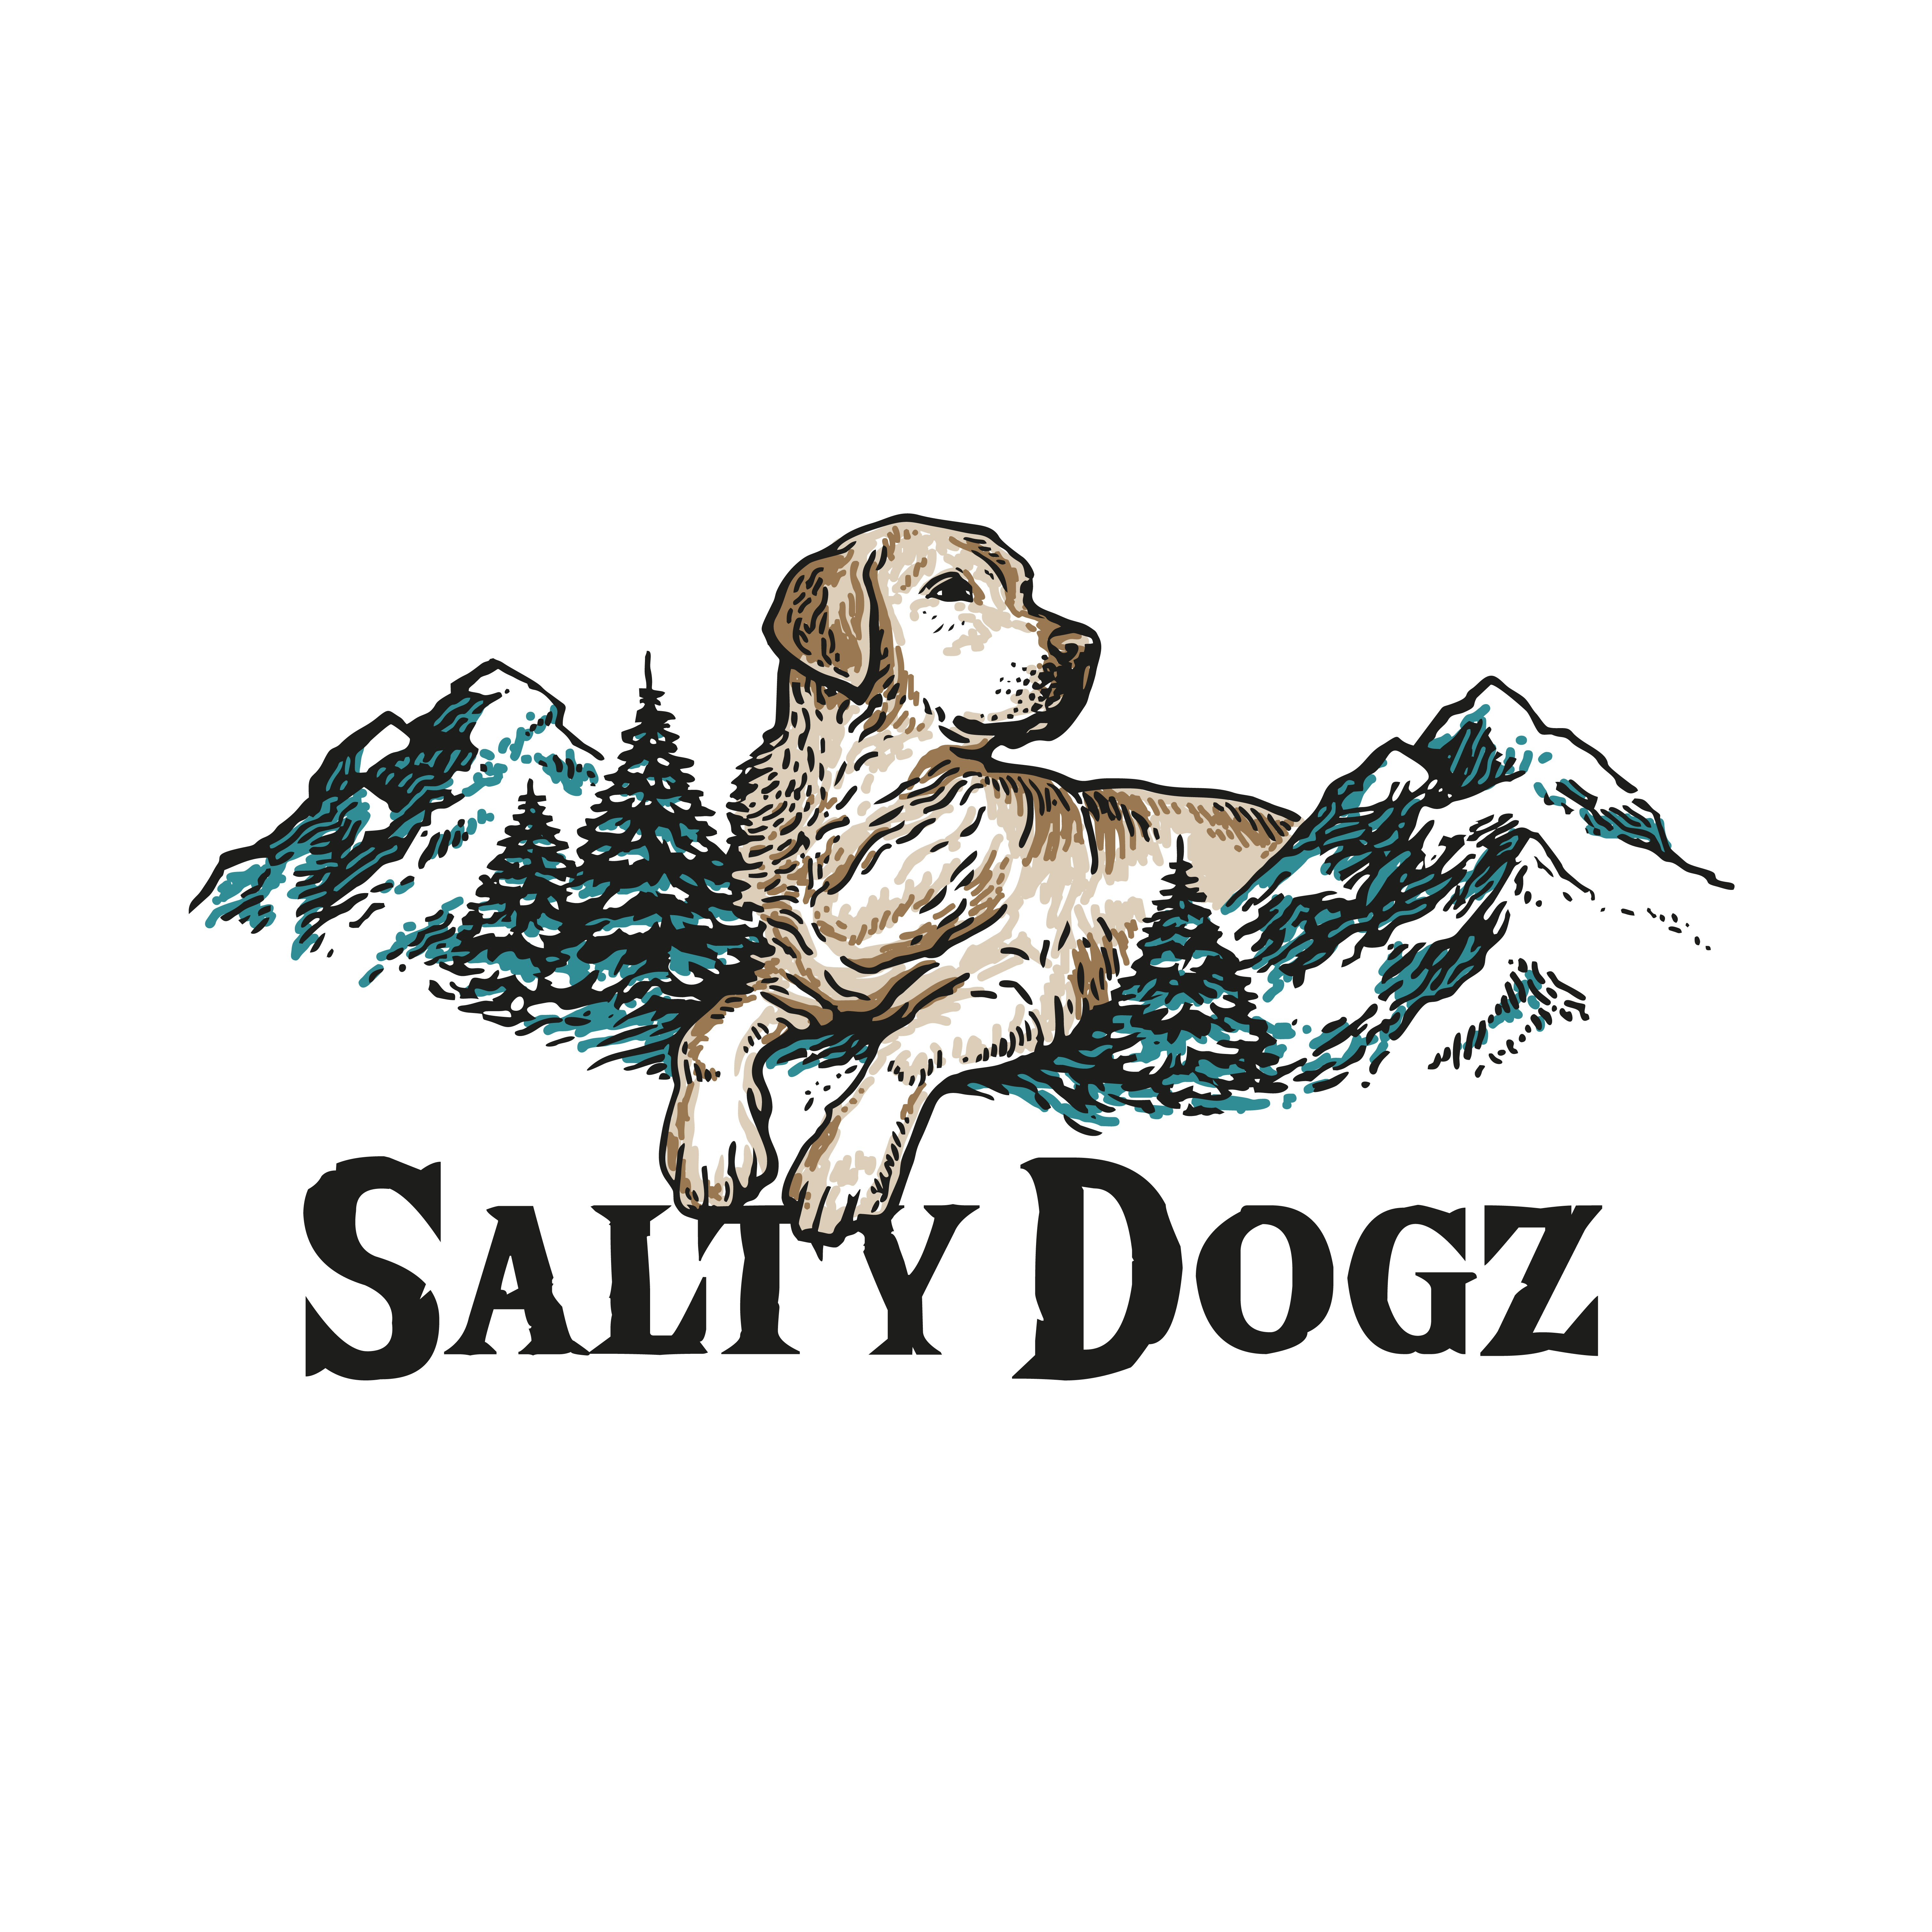 Hey Adventurer Beach-Dog lovers!  Design a logo for a small Construction & Projects Company